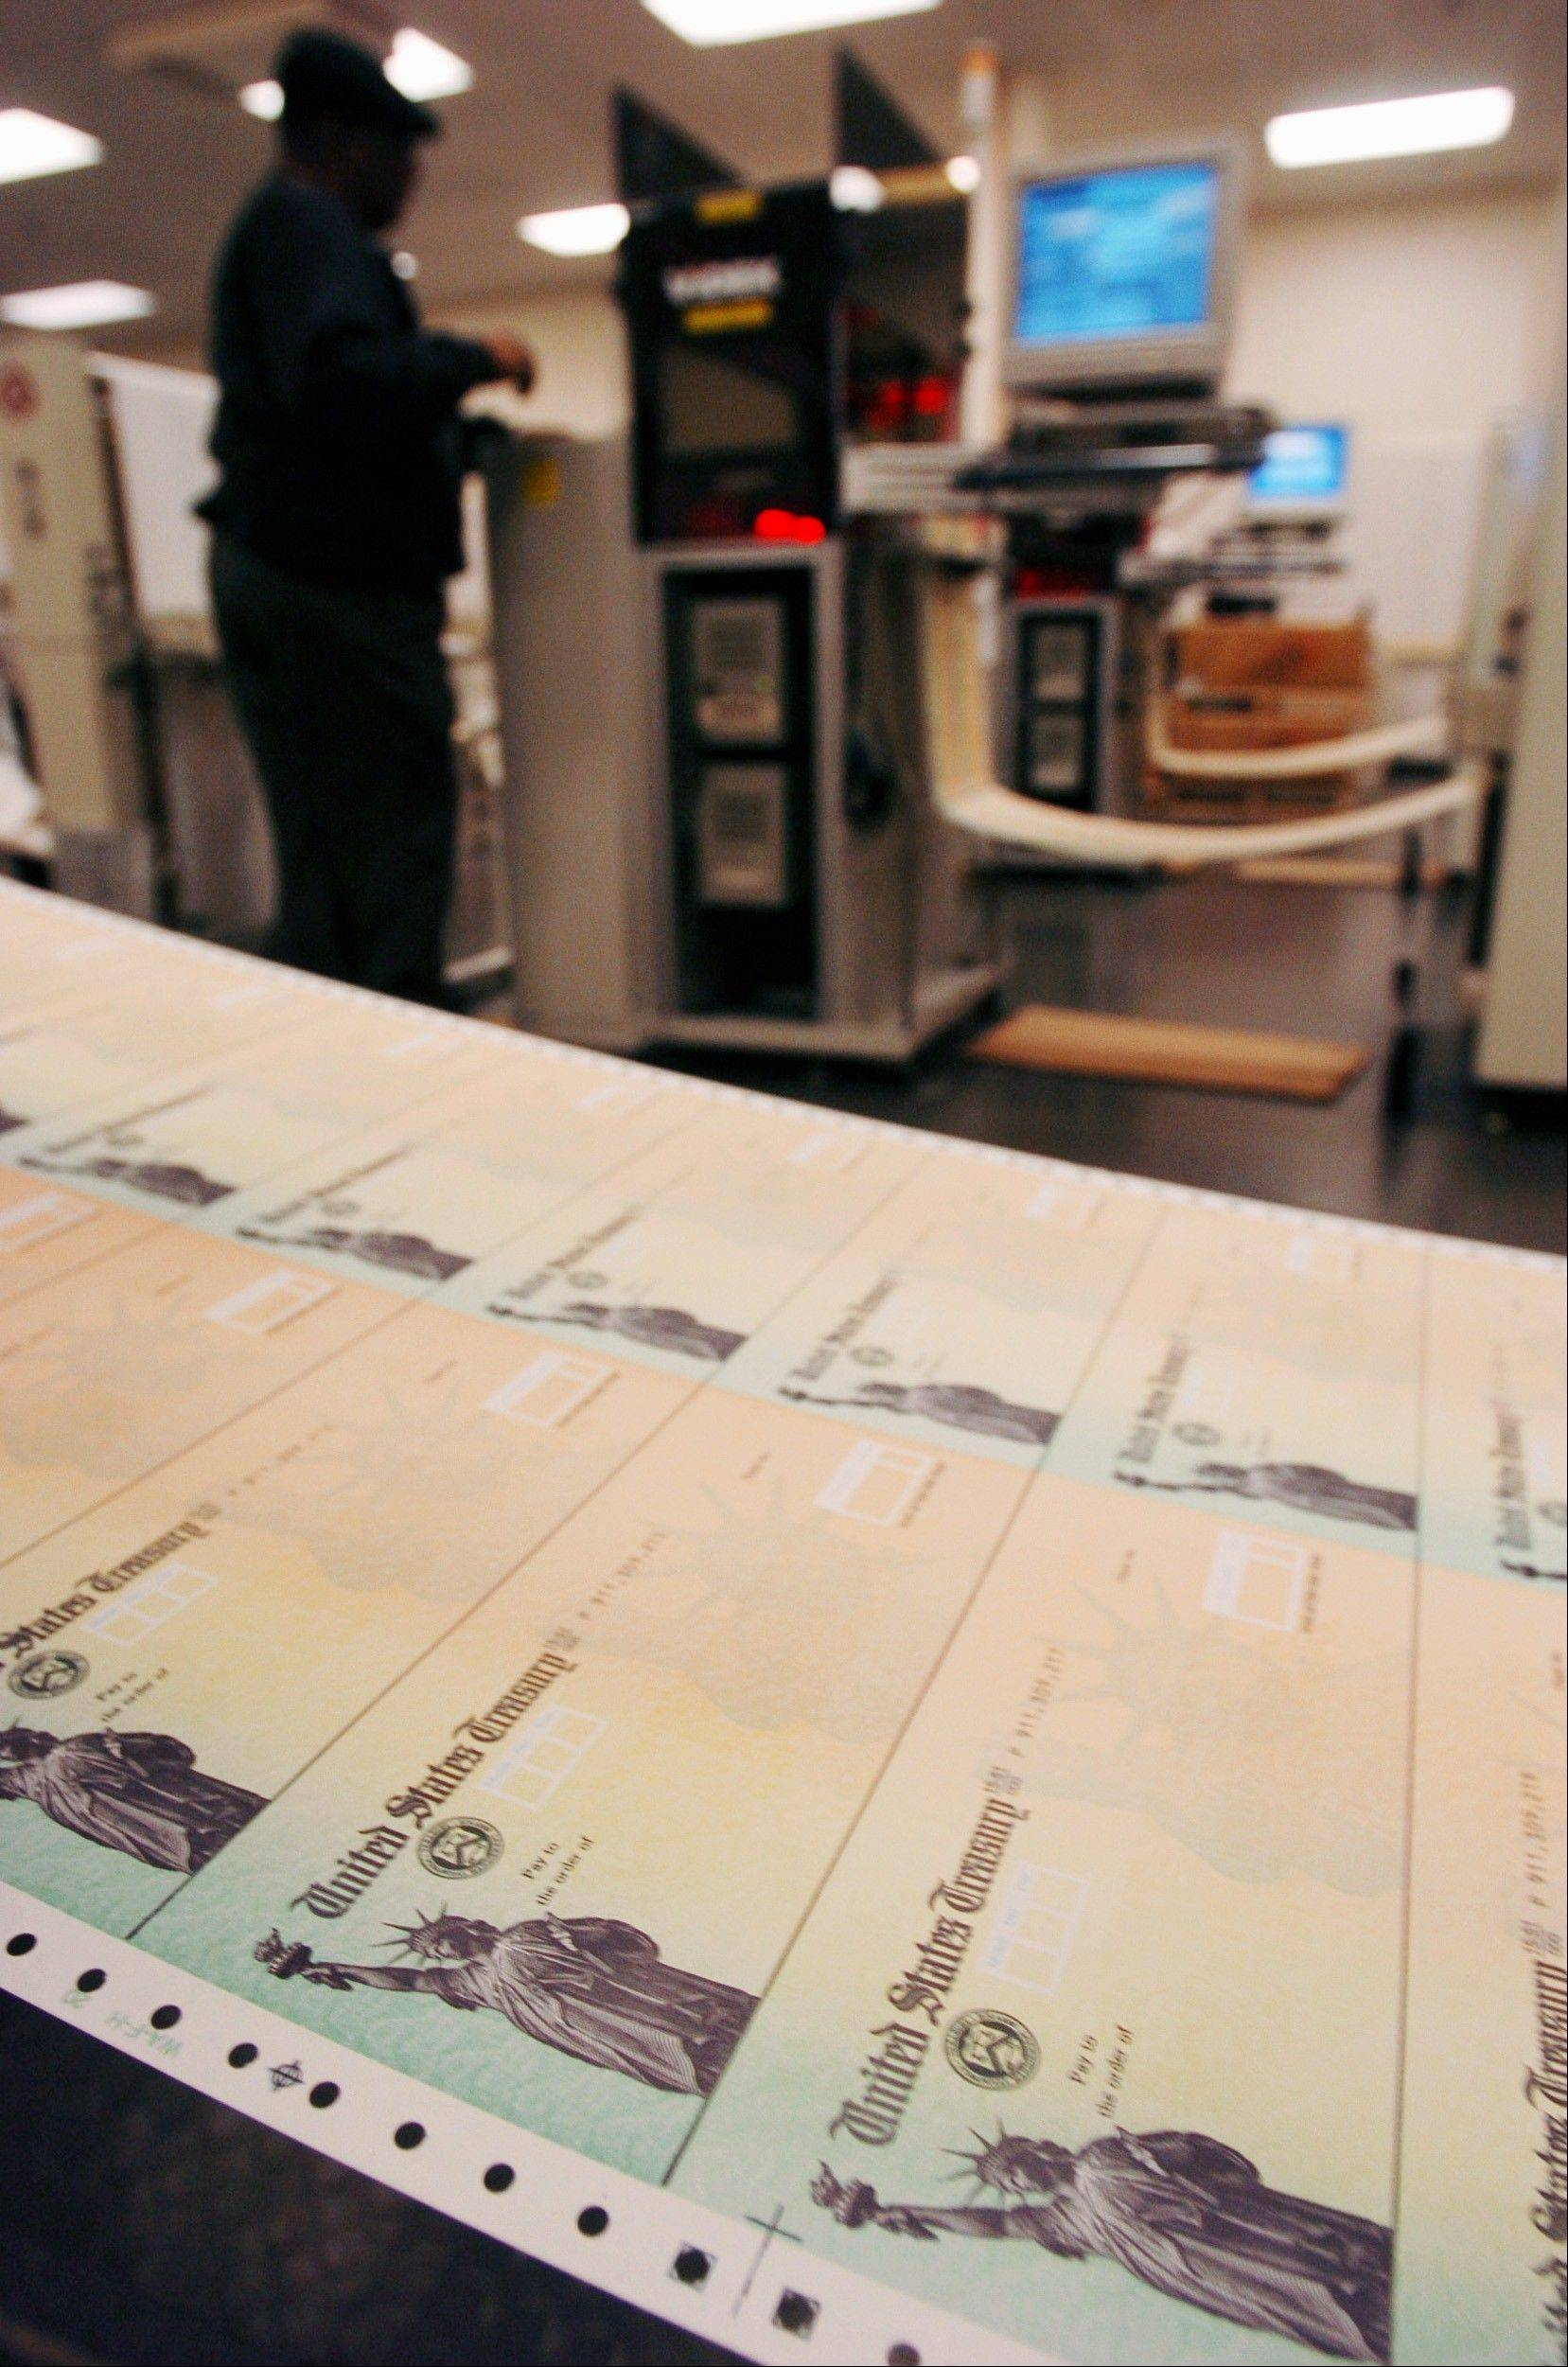 Rolls of blank Social Security checks run through printers and are processed at the U.S. Treasury's Financial Management Services facility in Philadelphia.